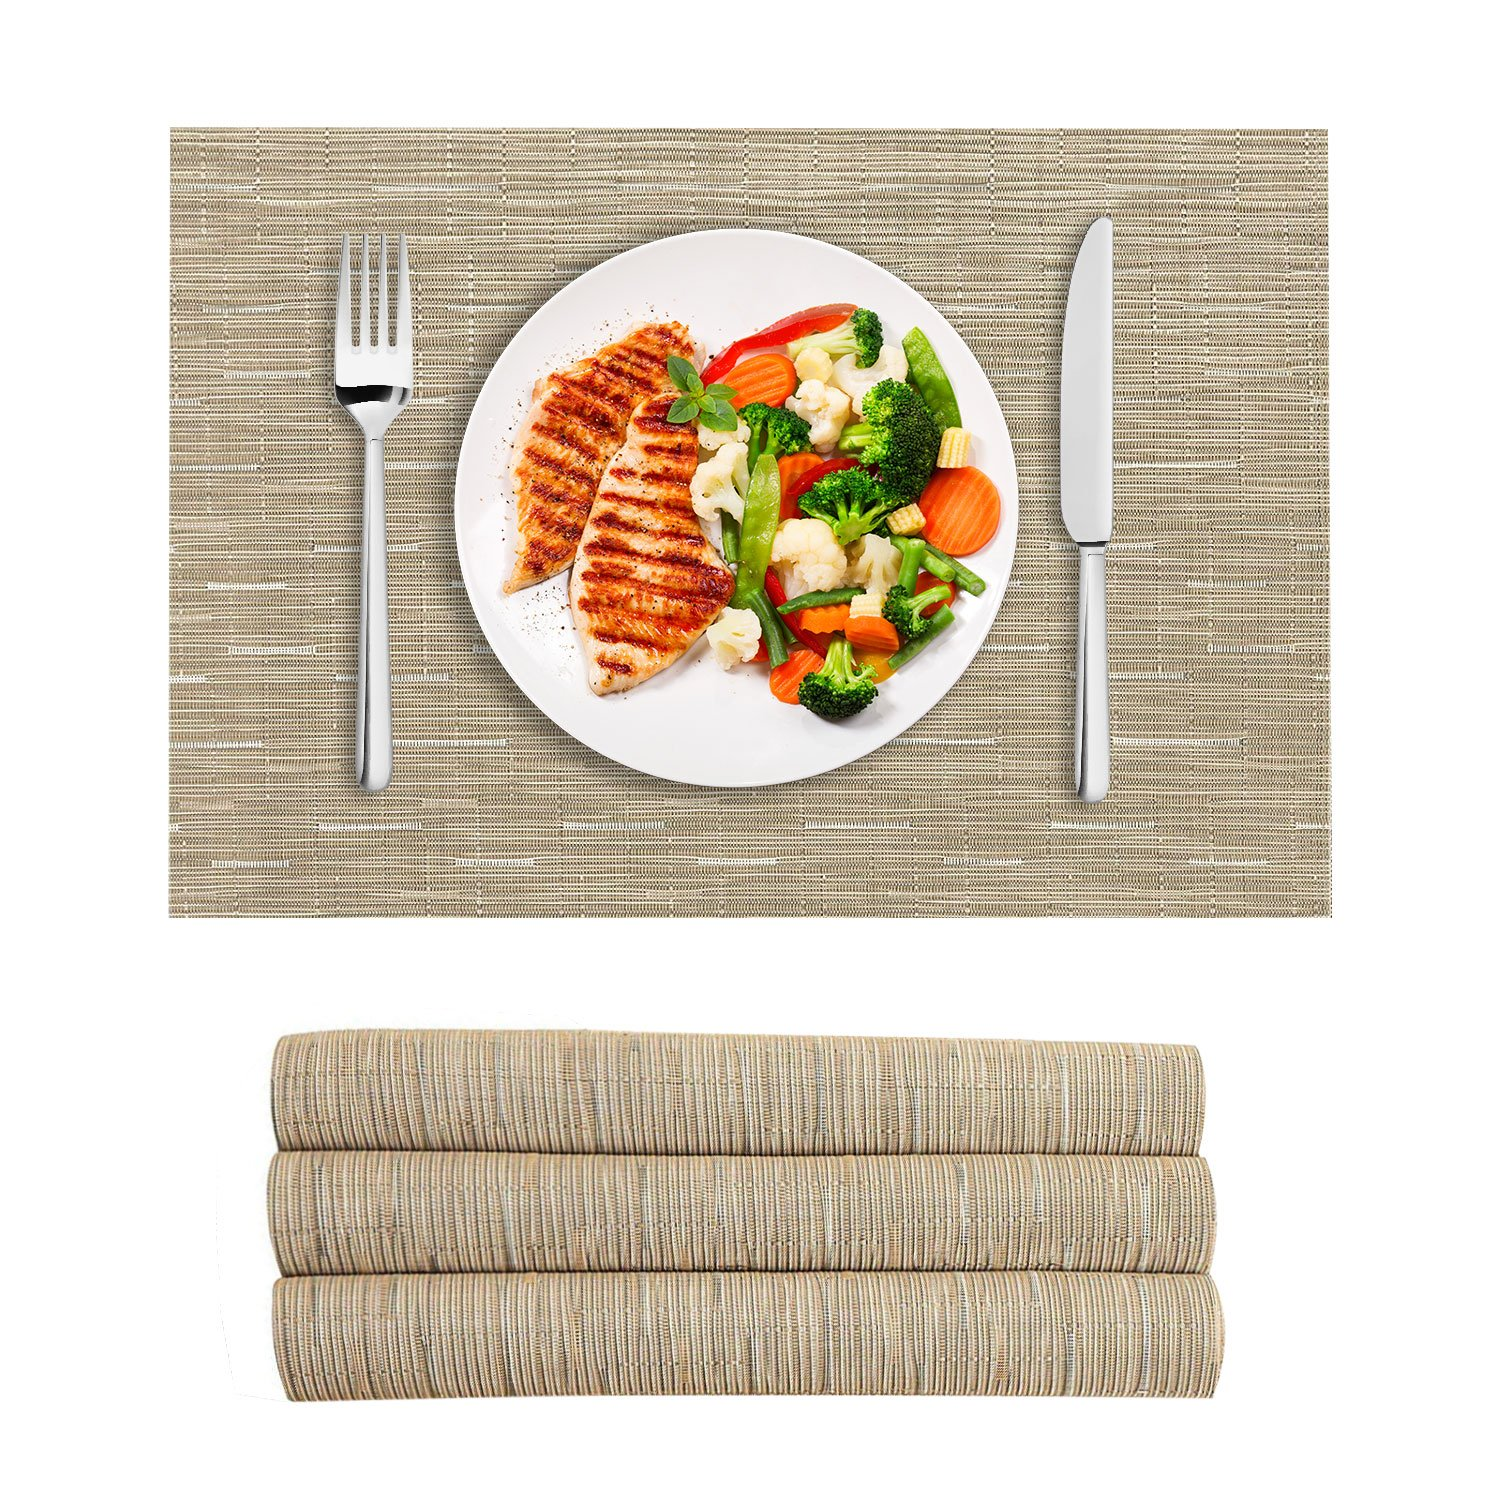 VEEYOO Woven Vinyl Non-slip Insulation Heat Stain Resistant Washable Table Placemats Kitchen Dining Table Top Meal Mat Place Mats, Set of 4, Natural